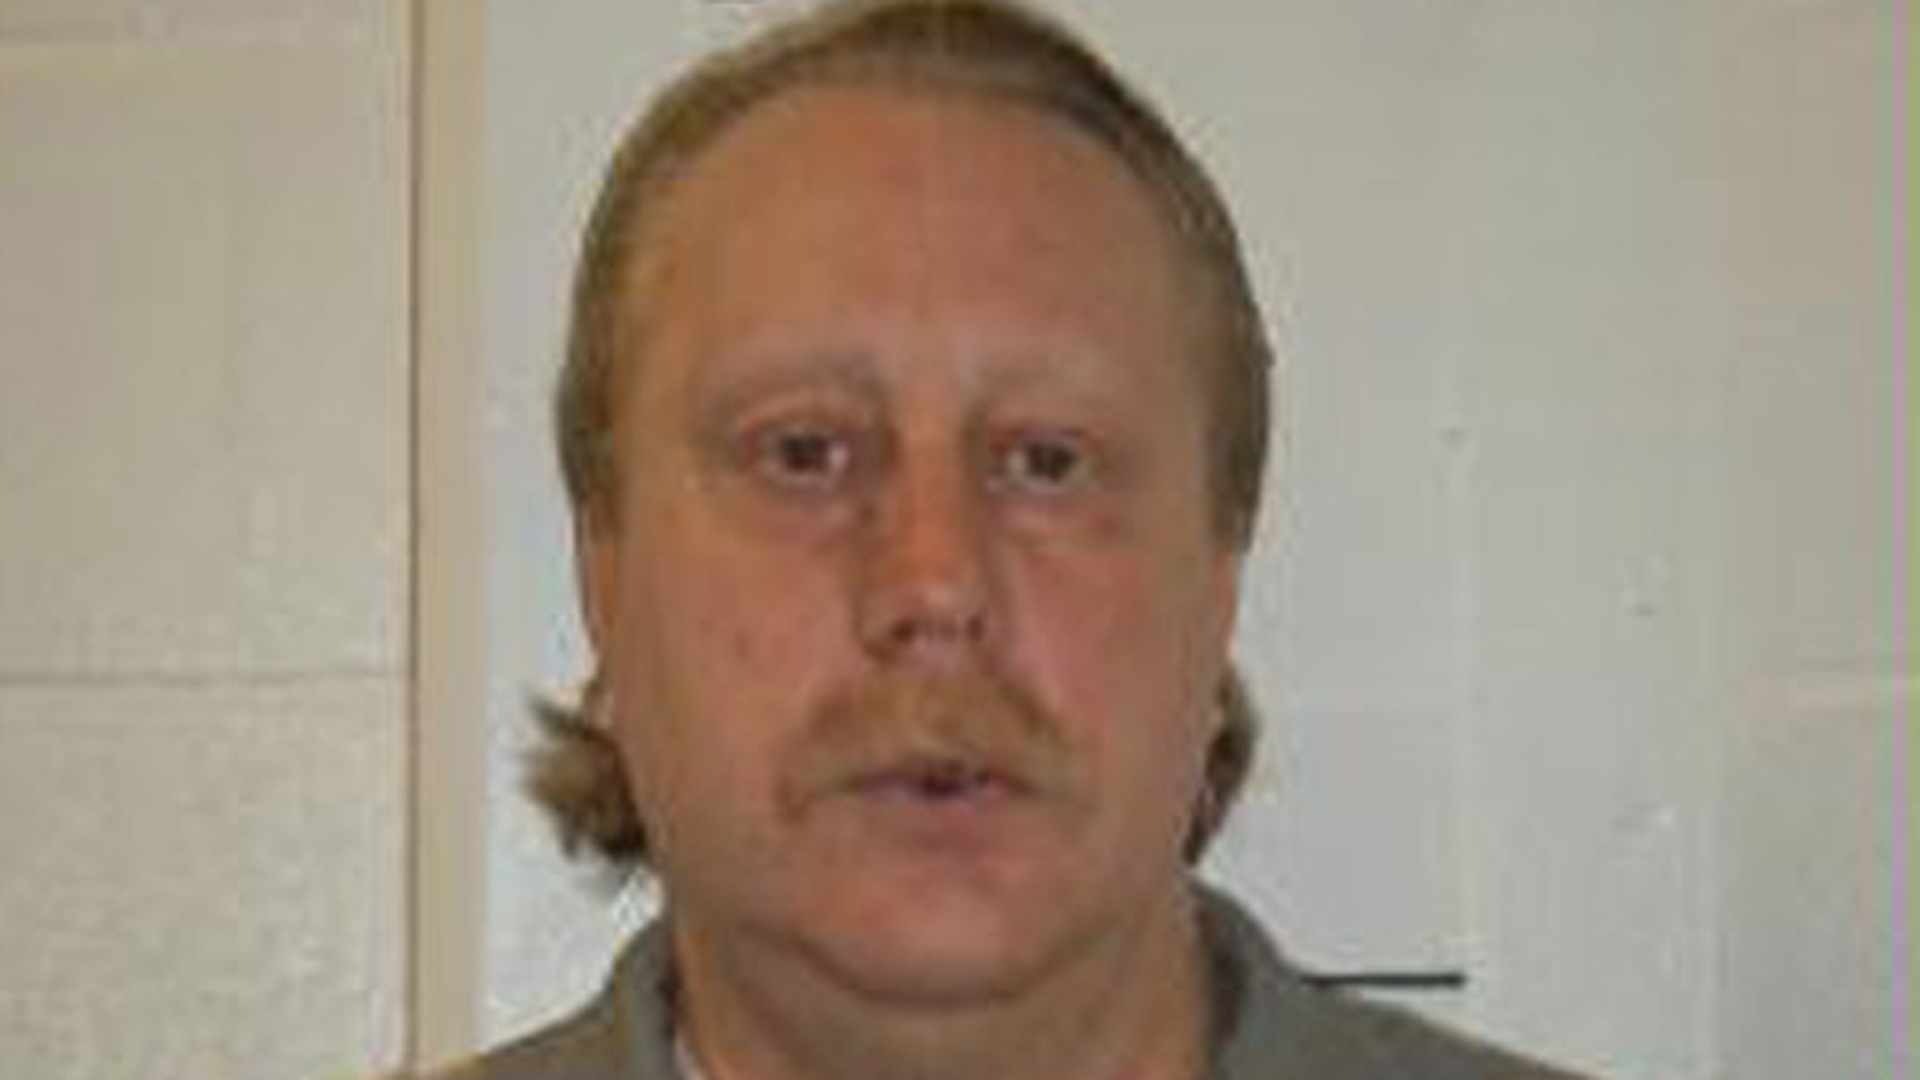 Russell Bucklew appears in a 2014 photo. (Credit: Missouri Department of Corrections via CNN)